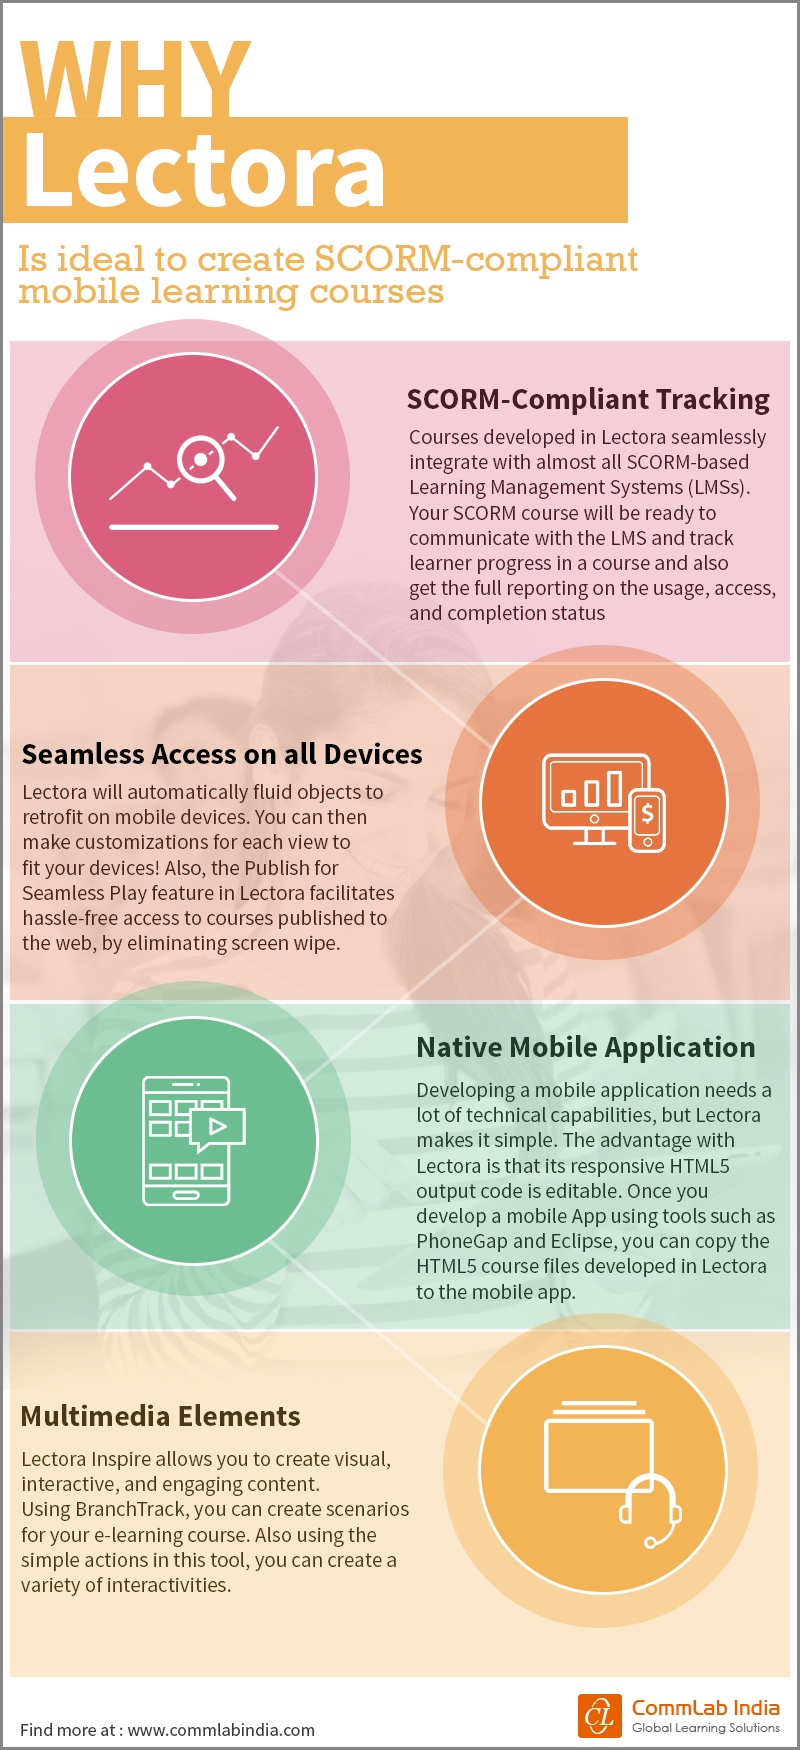 Why Lectora is Ideal to Create SCORM-compliant Mobile Learning Courses [Infographic]